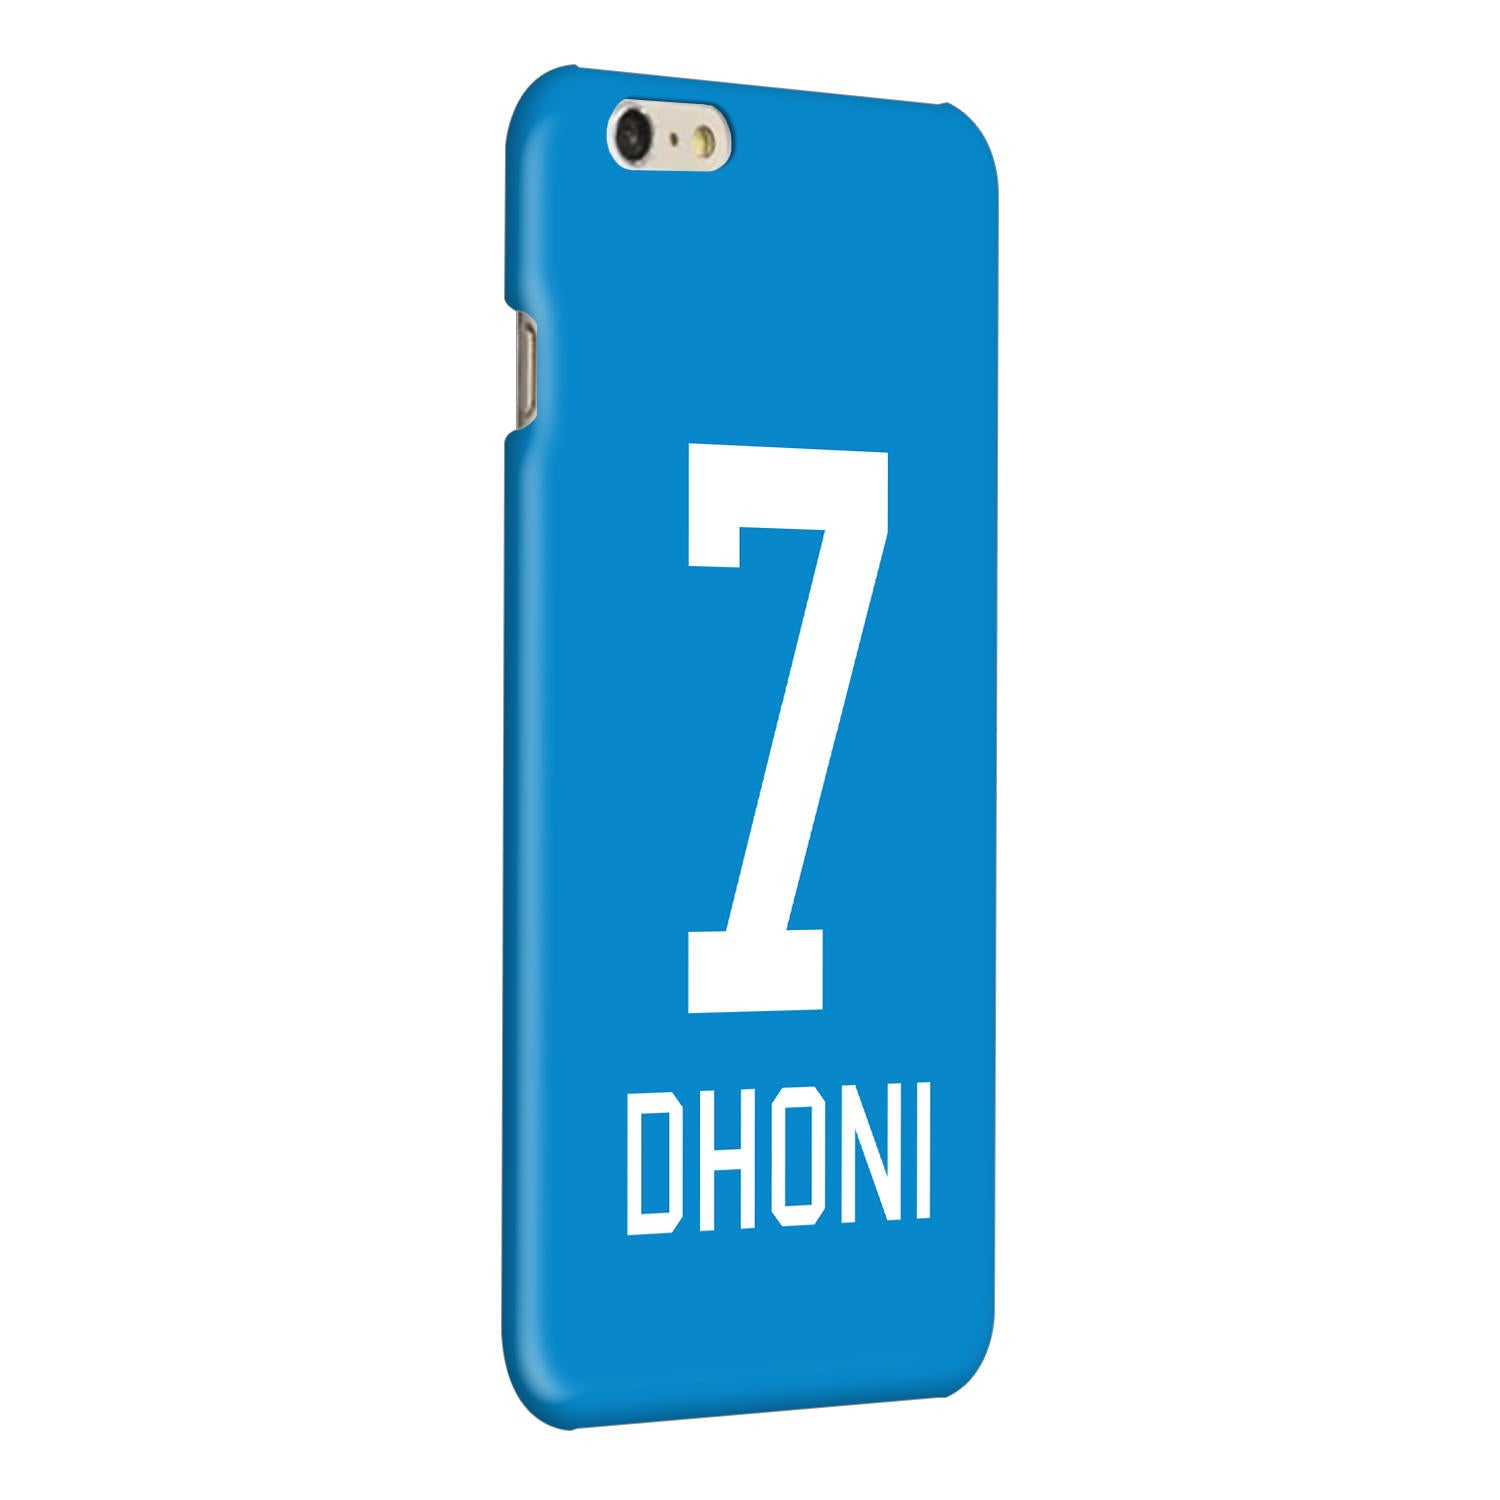 Dhoni Jersey iPhone 6 Plus Mobile Cover Case - MADANYU